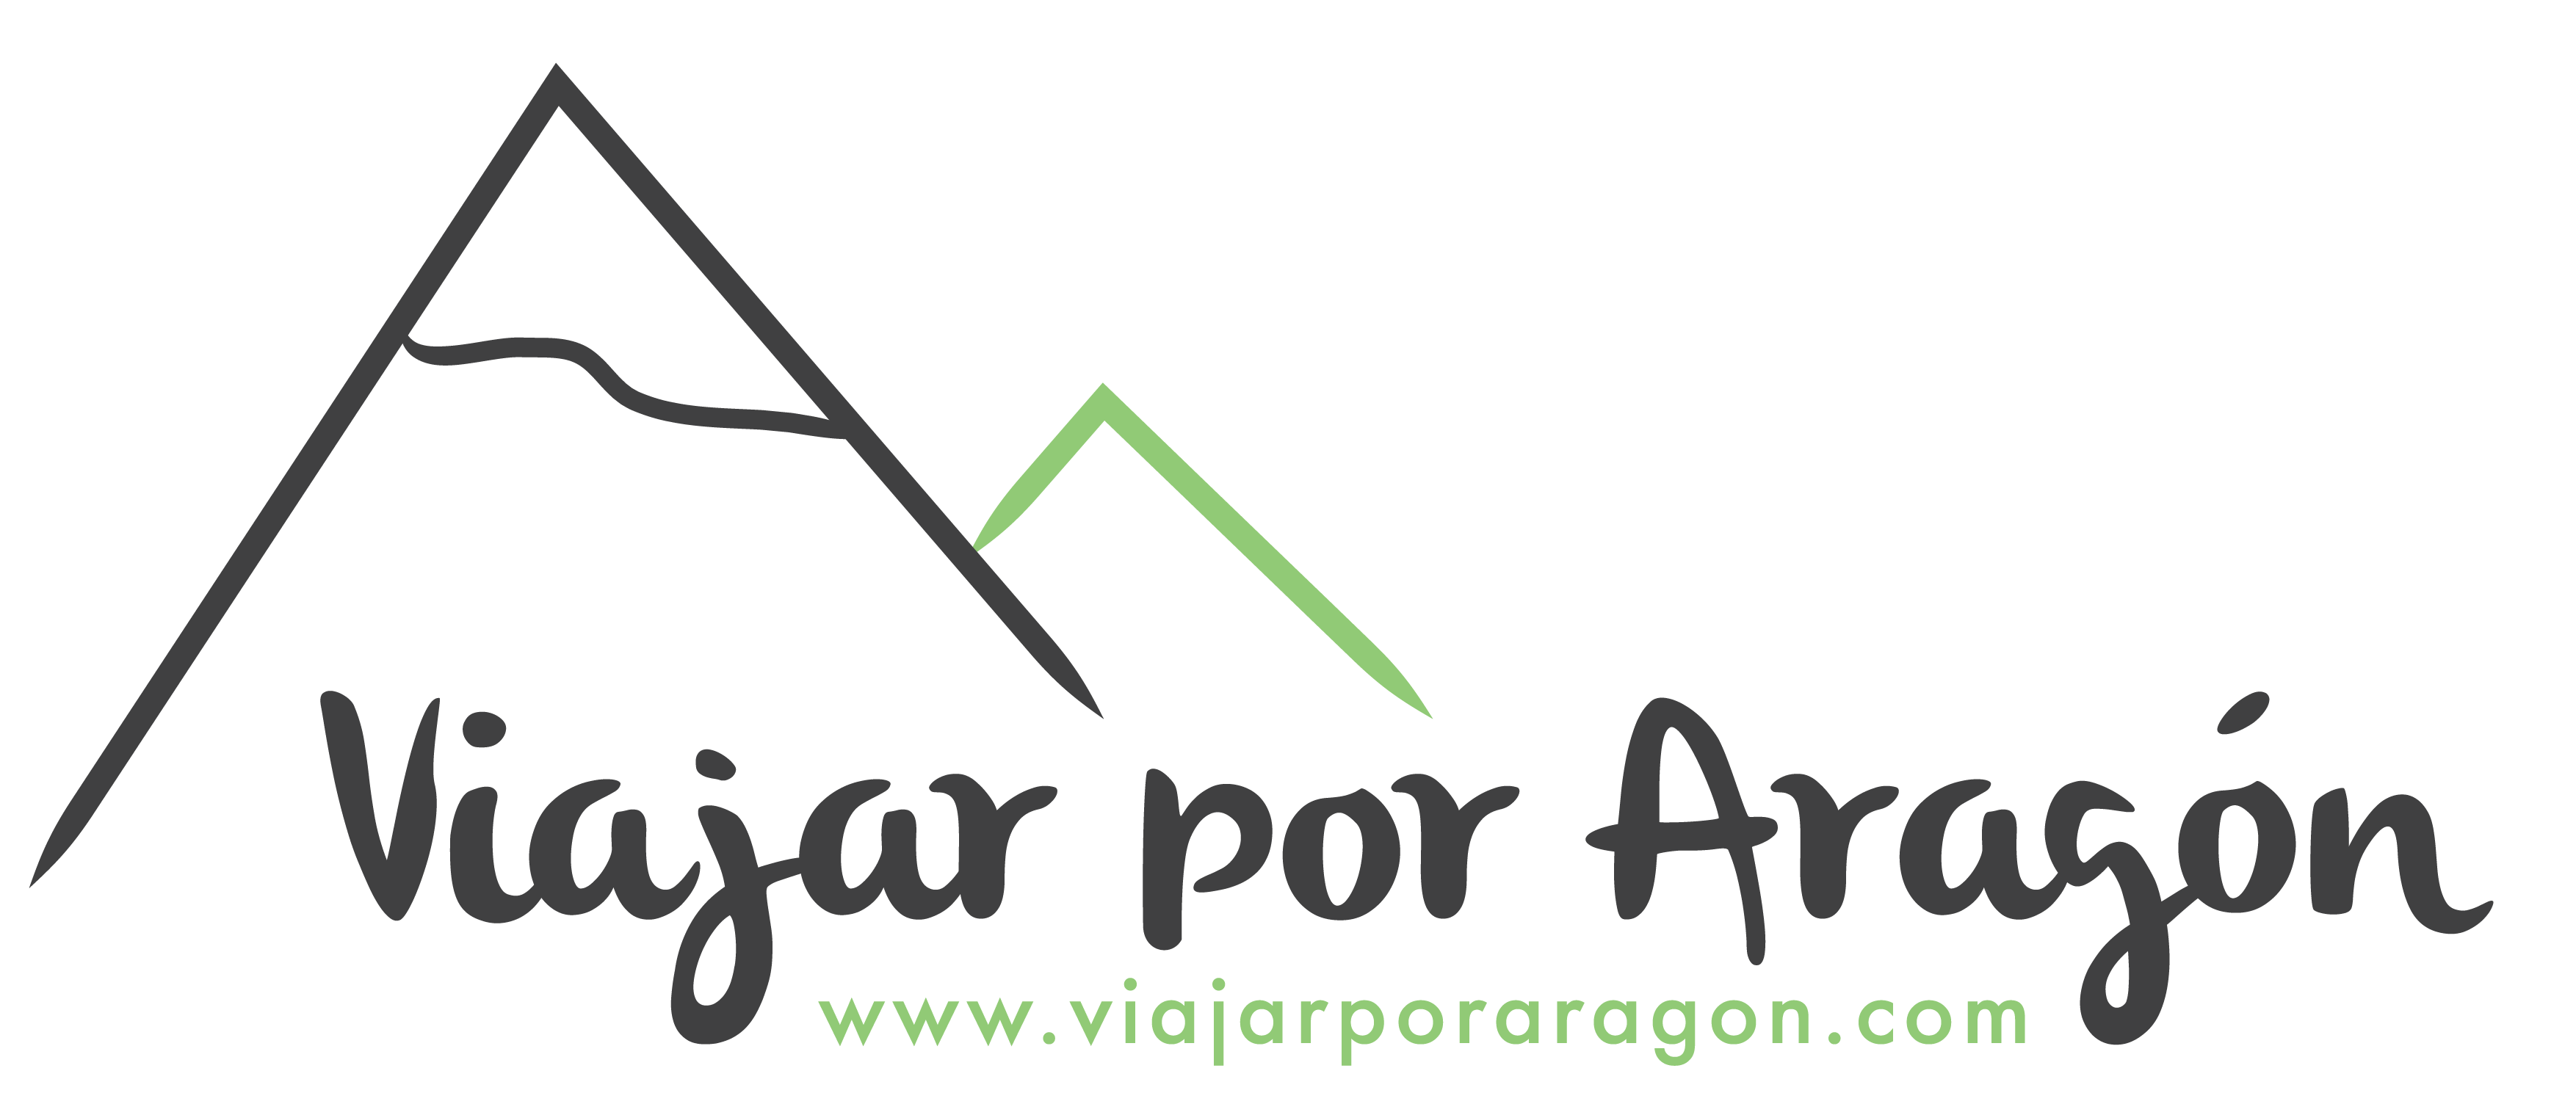 Visit Aragon – Guided Tours, Cultural Tours, Adventure Tours and more!